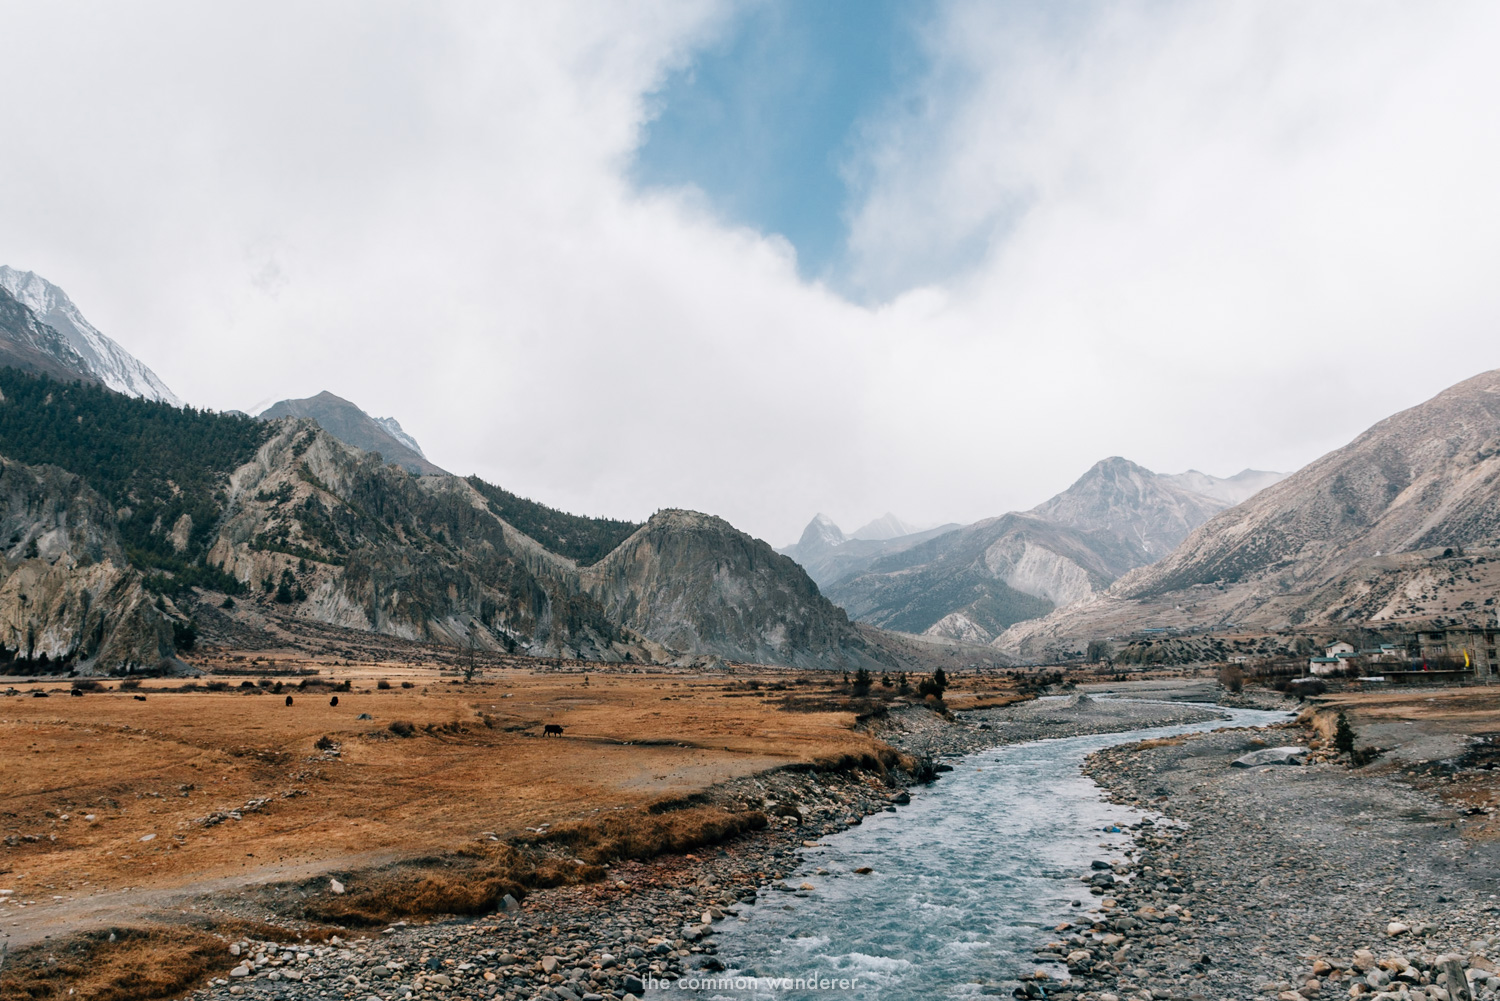 A river flows through the Annapurna Circuit, Nepal